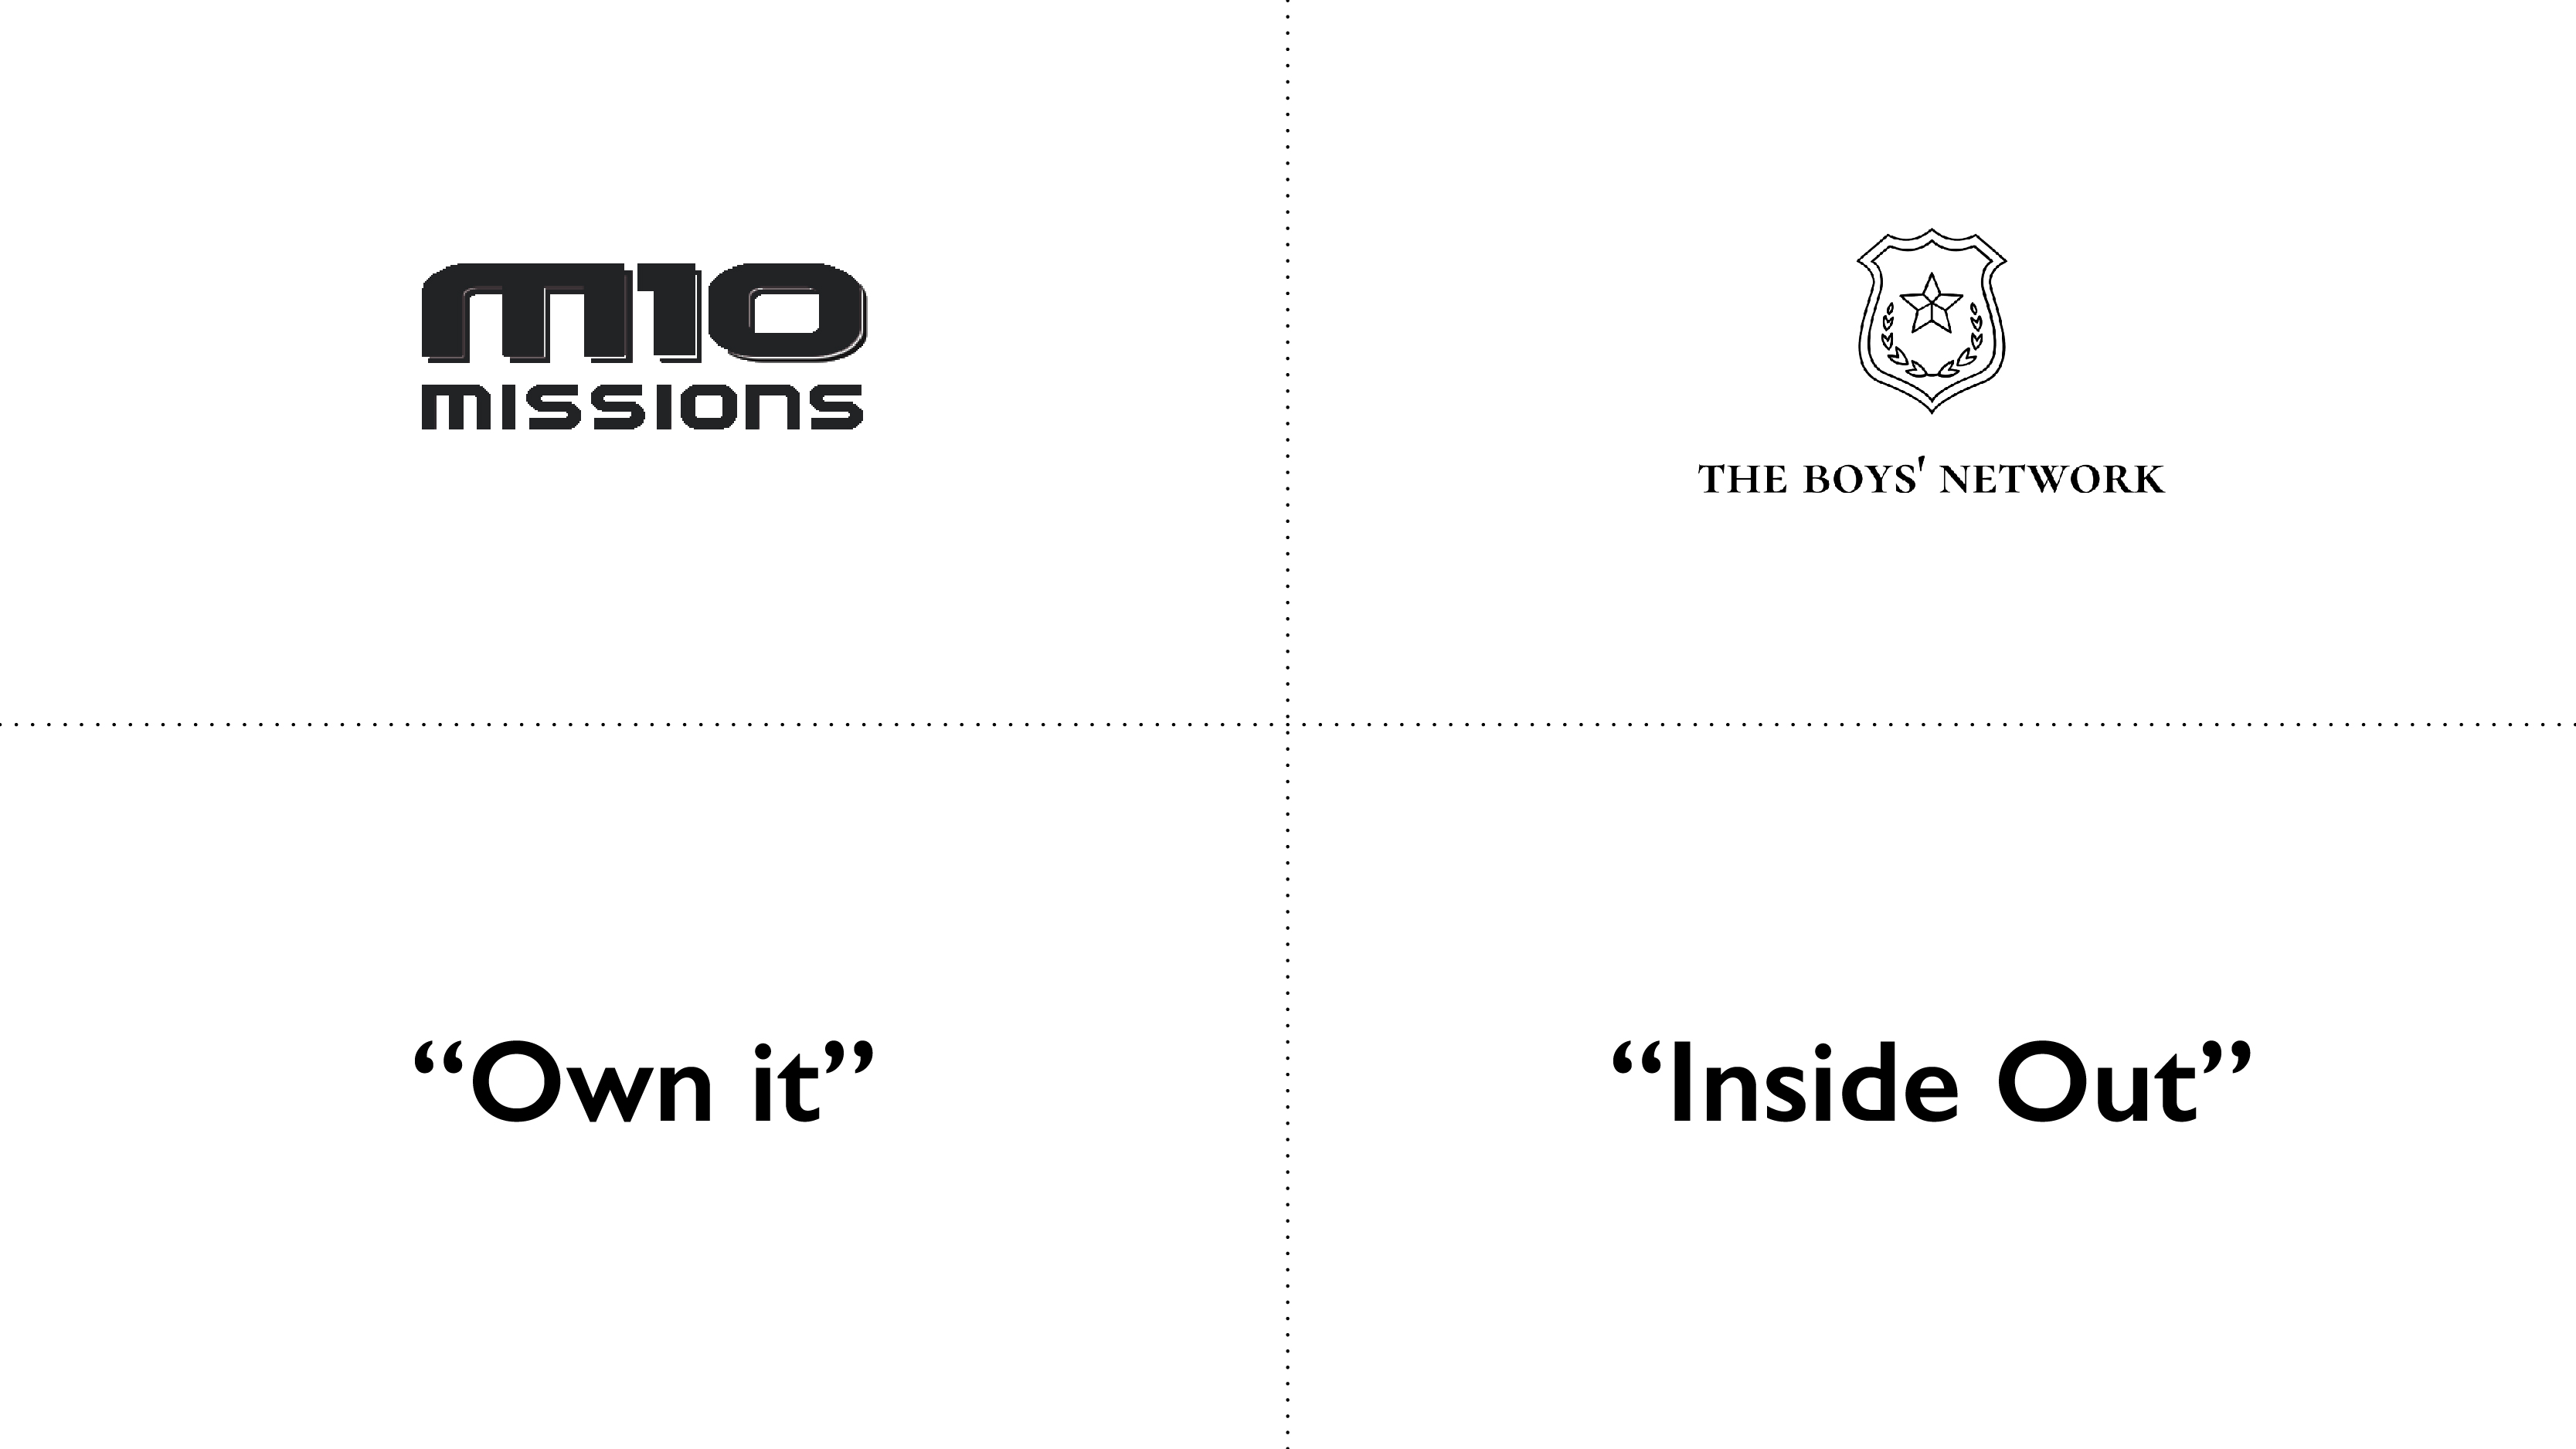 M10 Missions, The Boys Network, Own it, Inside Out